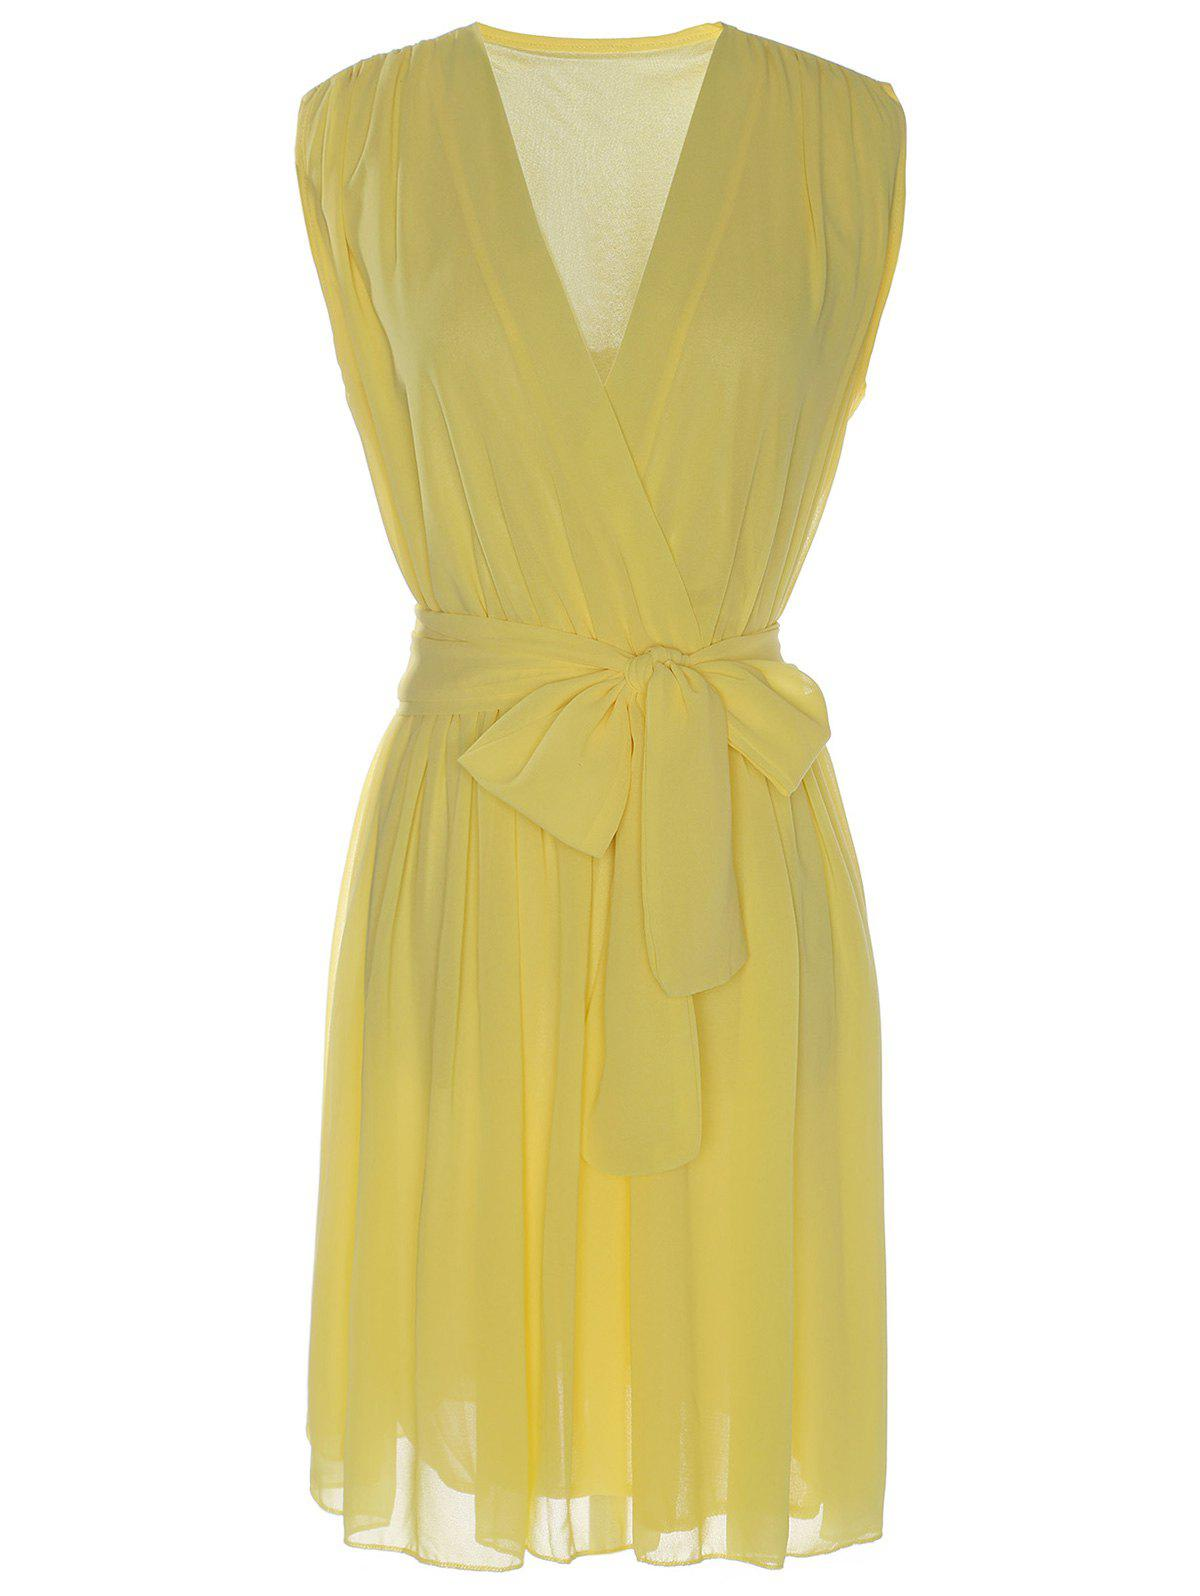 Sexy Sleeveless V-Neck Bowknot Embellished Women's Chiffon Dress - YELLOW XL